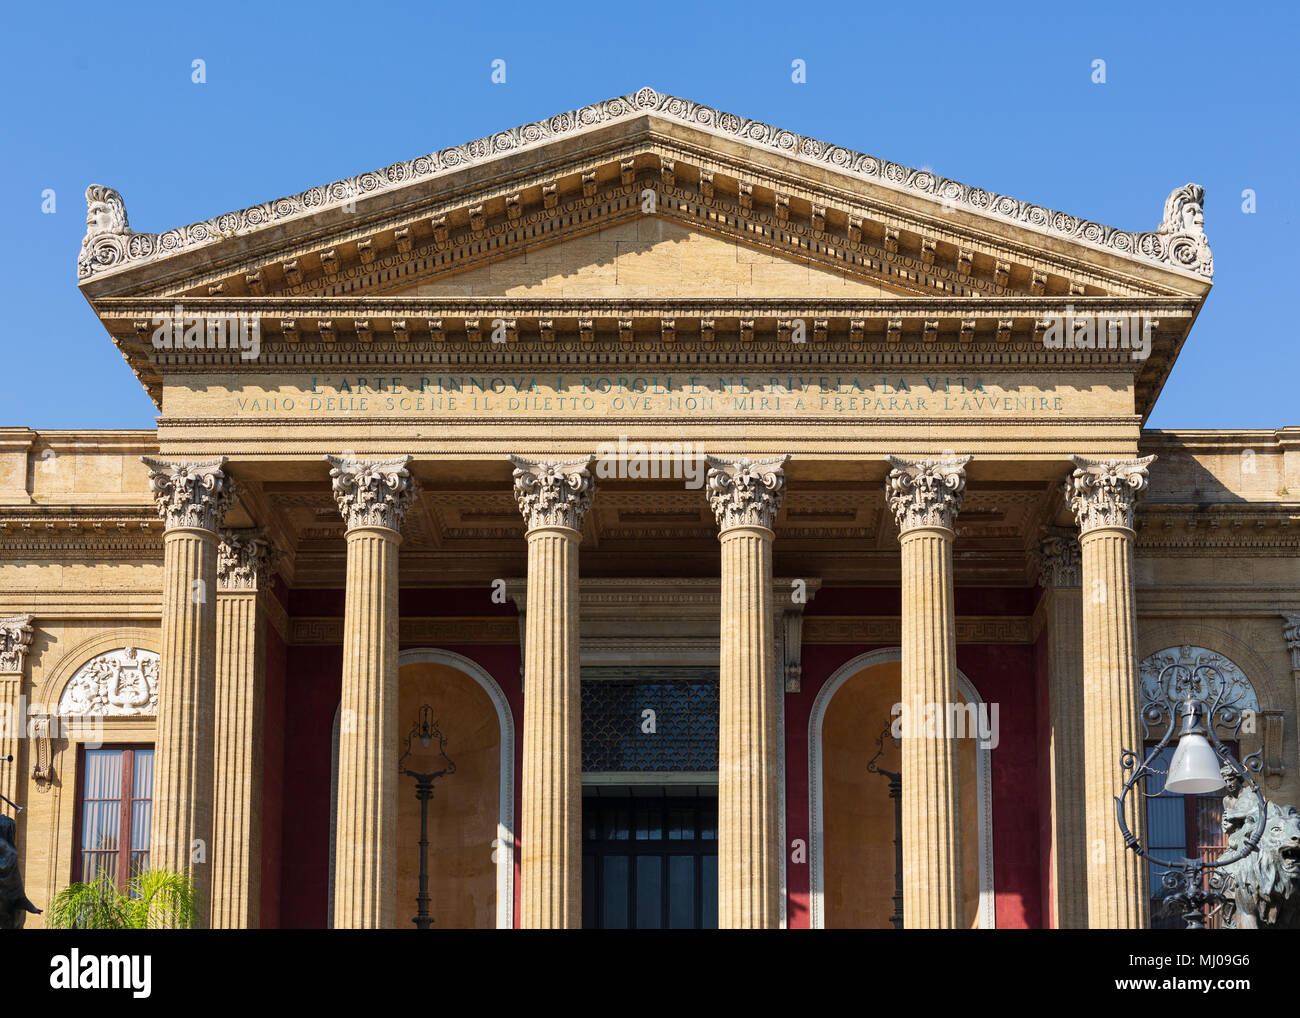 Teatro Massimo de Palerme, Sicile, Italie Photo Stock